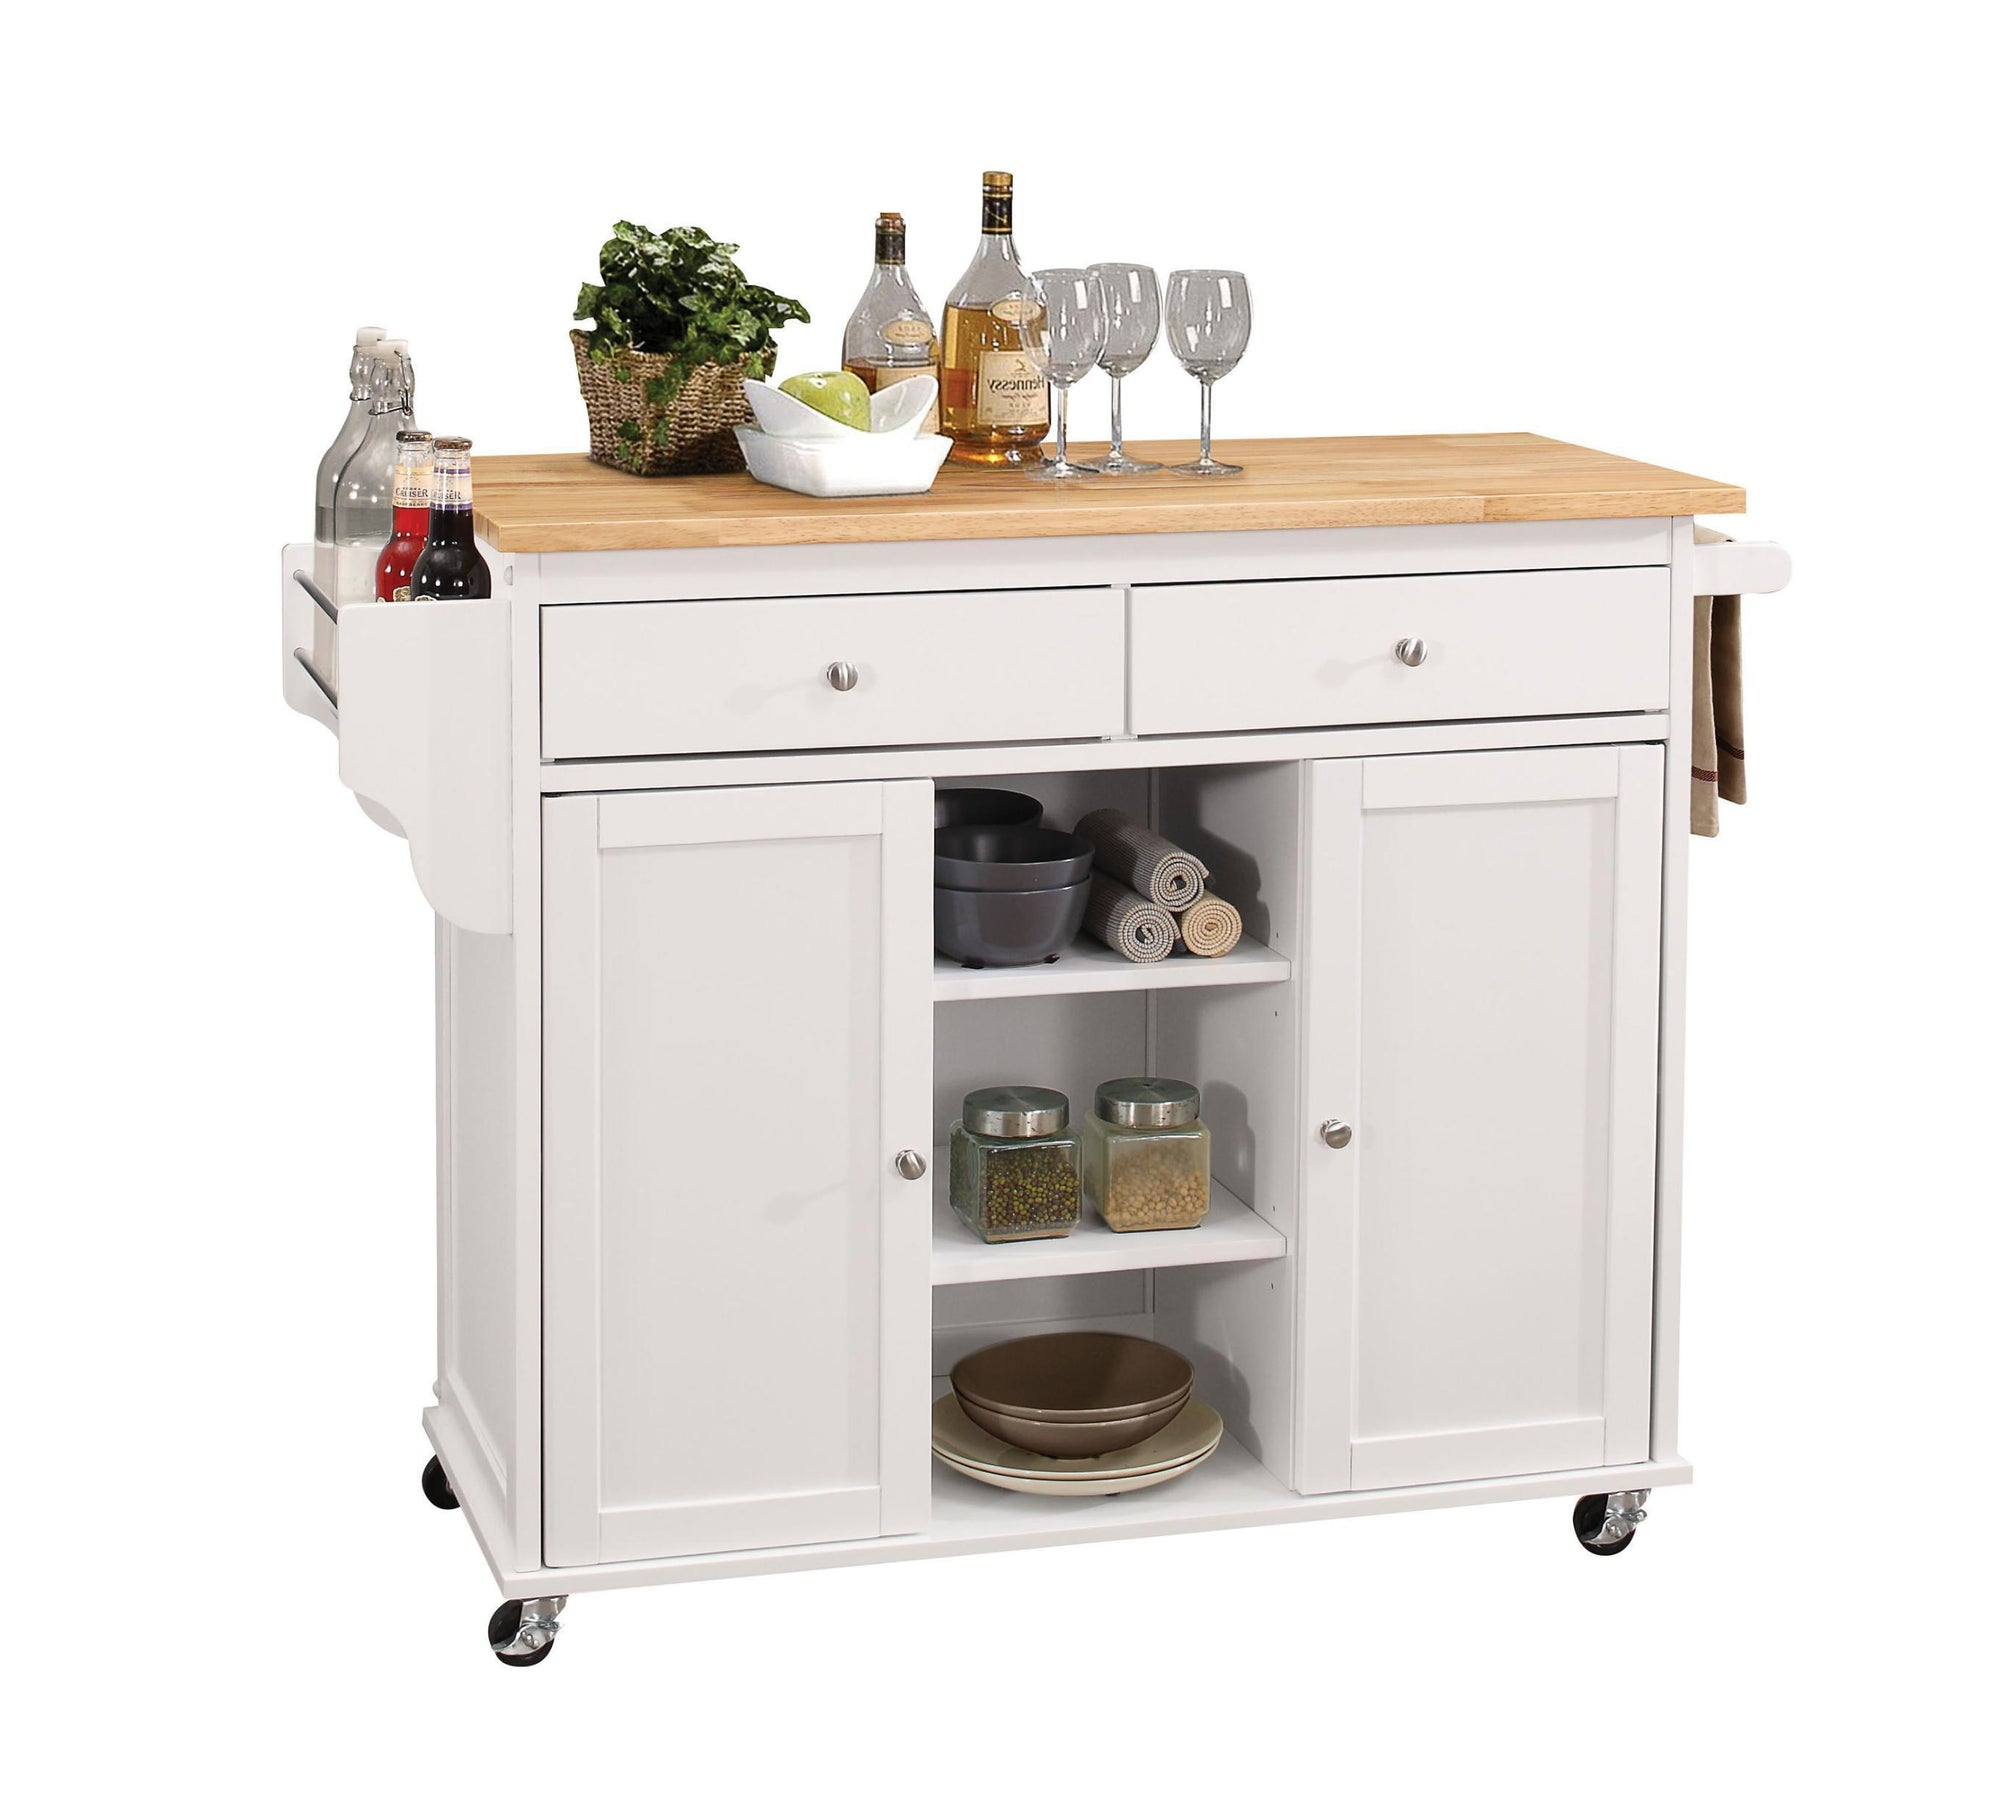 Benches & Carts Kitchen Island In Natural And White - Rubber Wood, Mdf Natural And White 689211811744 HR286672